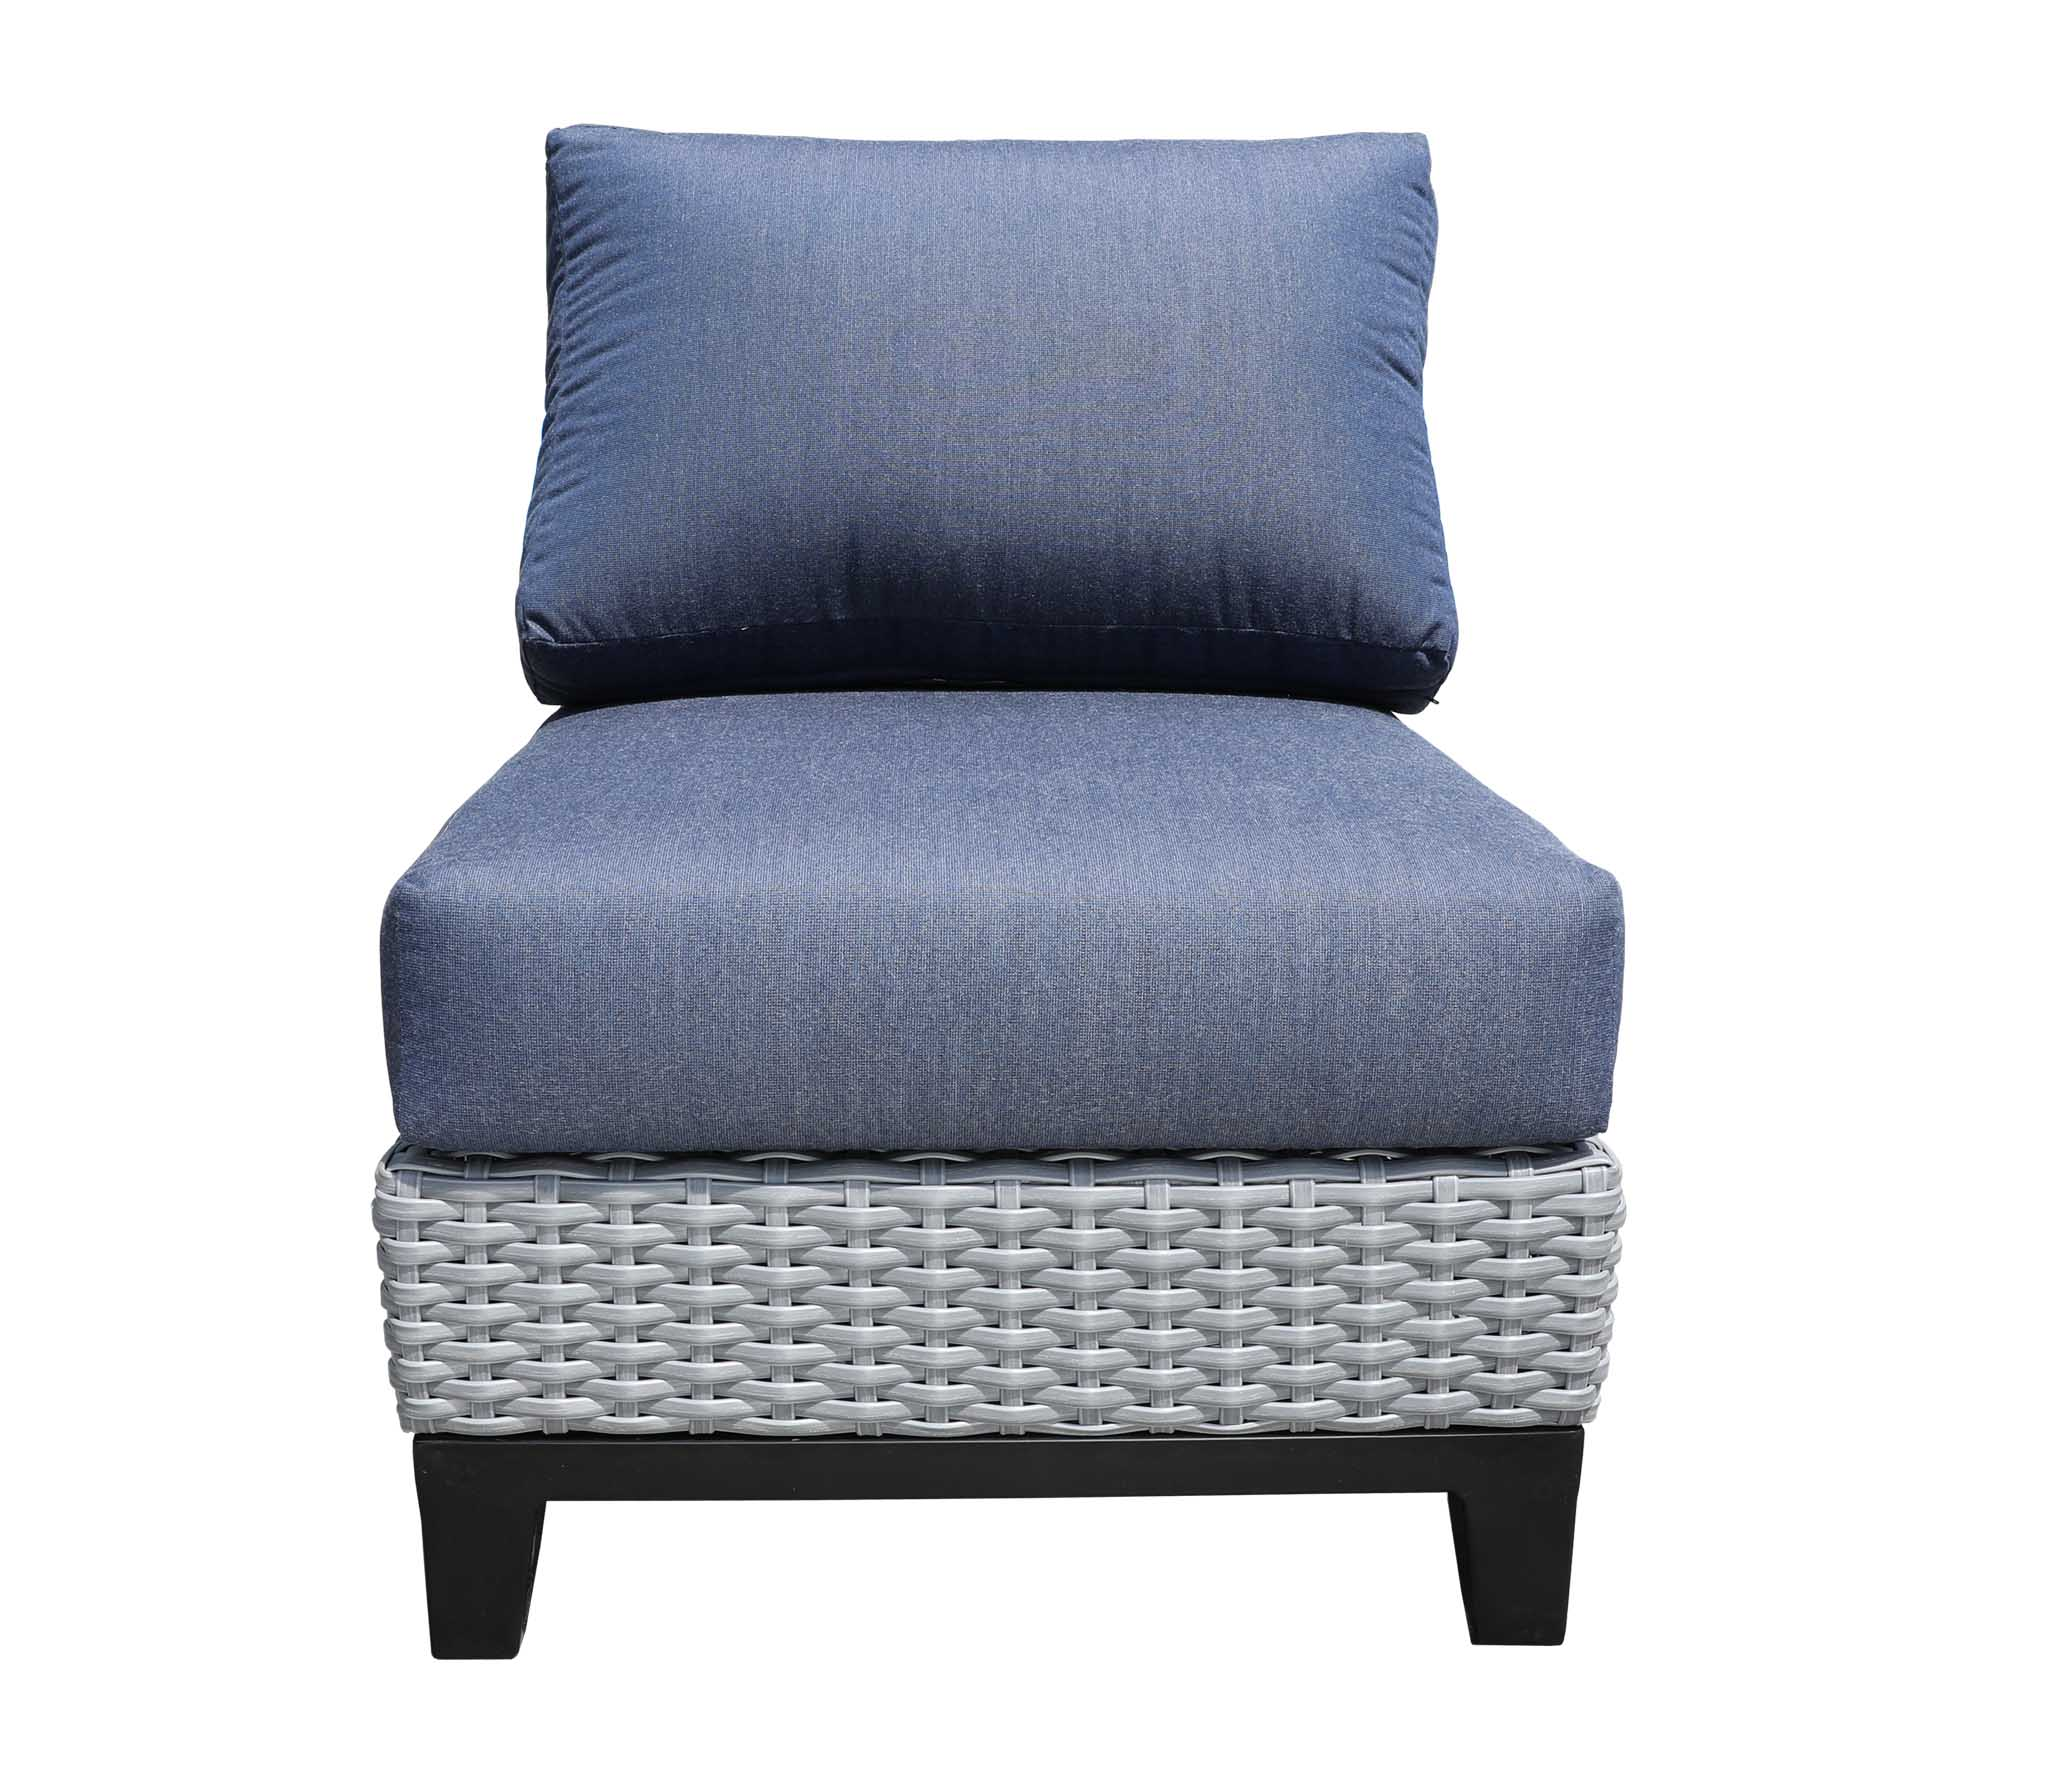 Oakville Outdoor Furniture Tribeca Slipper Chair 9419 Patio Furniture Wicker